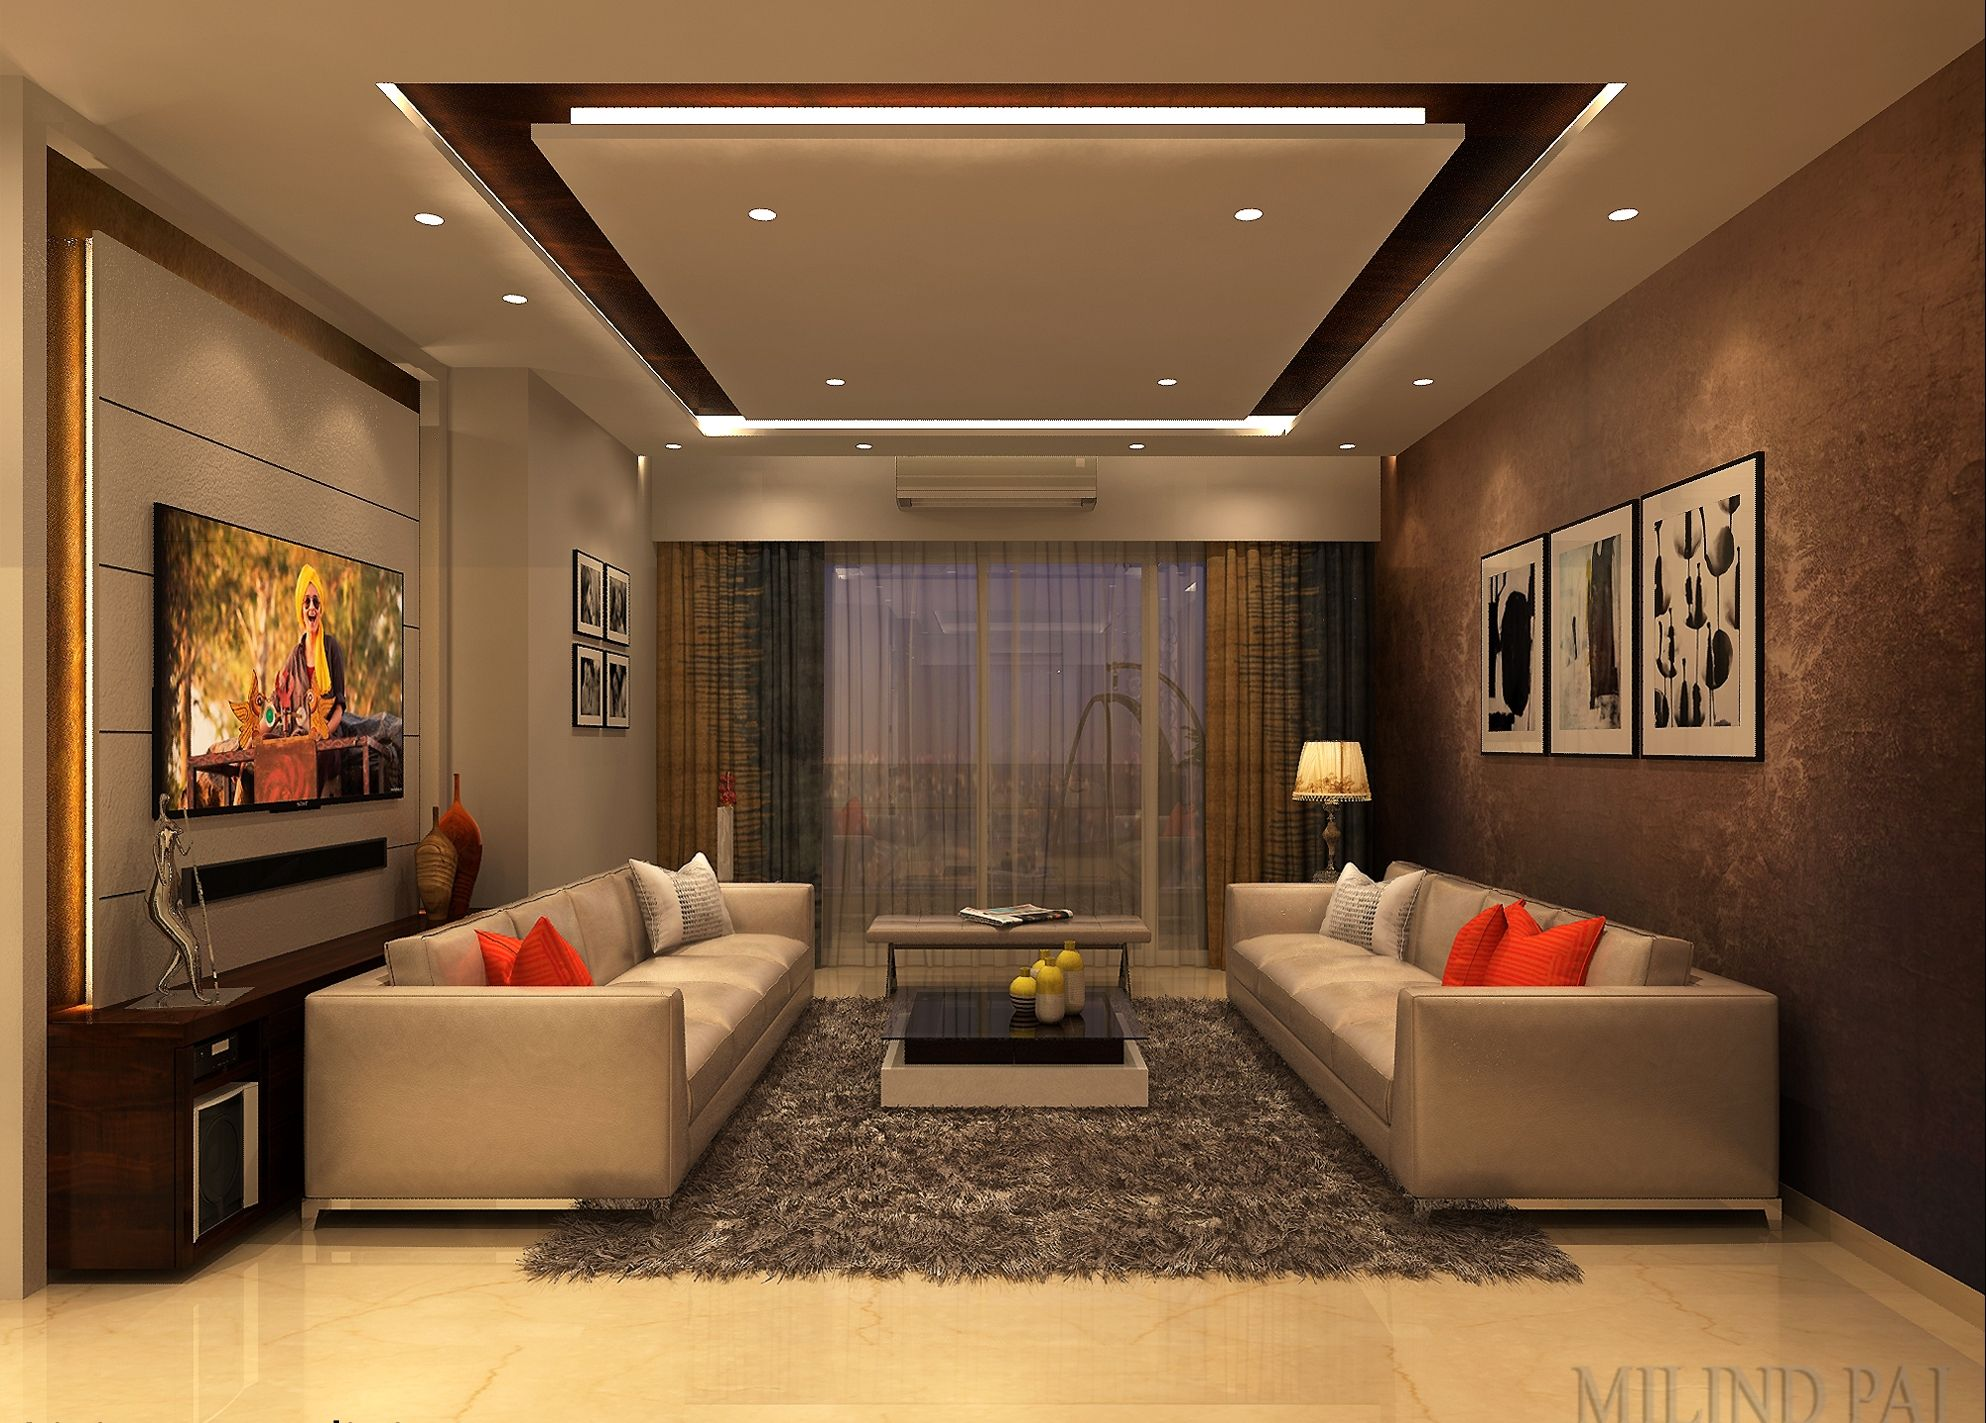 Pin By Sri Sashank On Celings Ceiling Design Modern Ceiling